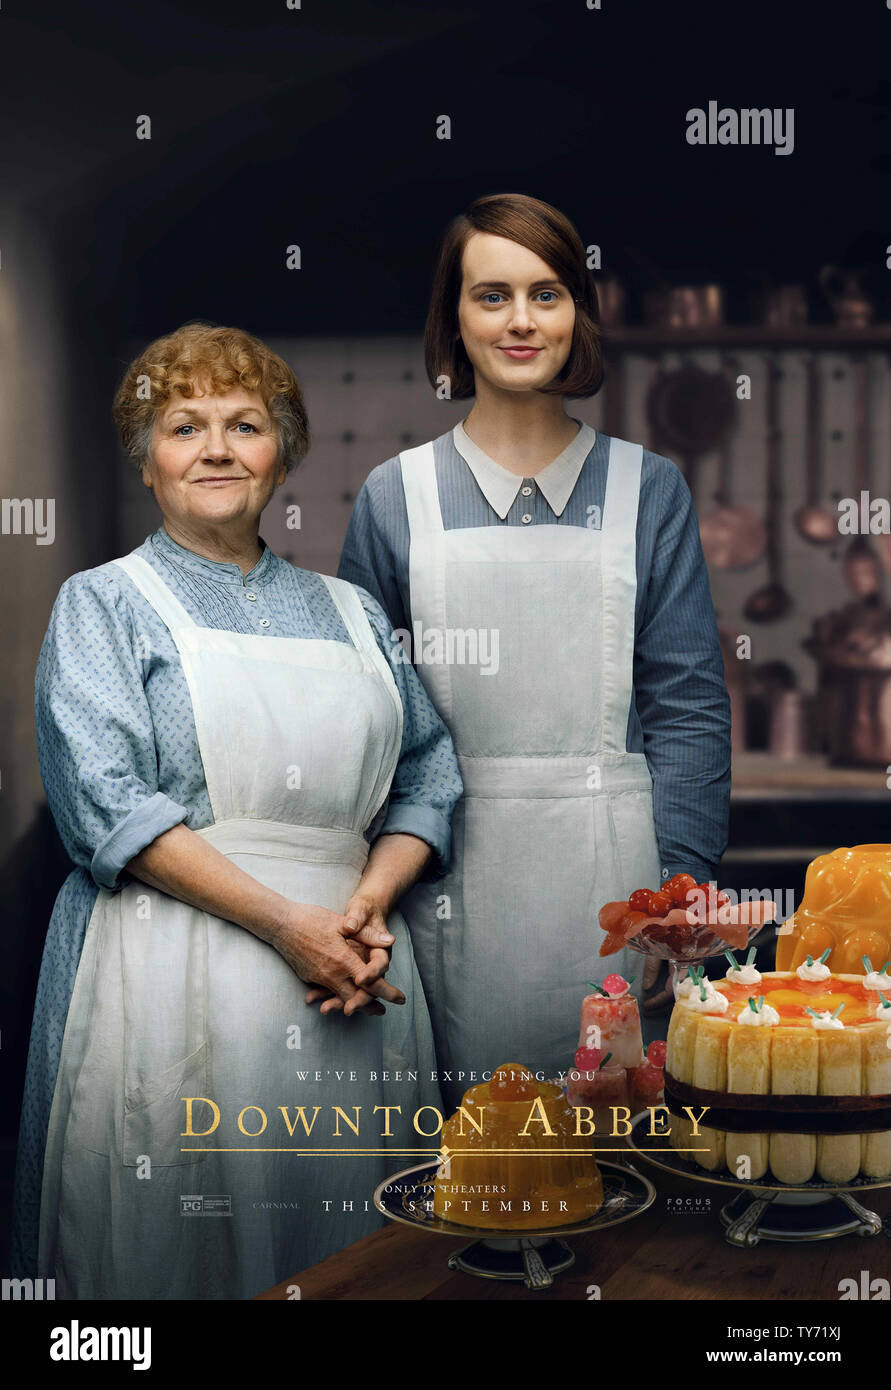 RELEASE DATE: September 20, 2019 TITLE: Downton Abbey STUDIO: Focus Features DIRECTOR: Michael Engler PLOT: Adapted from the hit TV series Downton Abbey that tells the story of the Crawley family, a wealthy owner of a large estate in the English countryside in the early 20th century. STARRING: LESLEY NICOL as Mrs, Patmore, SOPHIE MCSHERA as Daisy Mason. (Credit Image: © Focus Features/Entertainment Pictures) - Stock Image